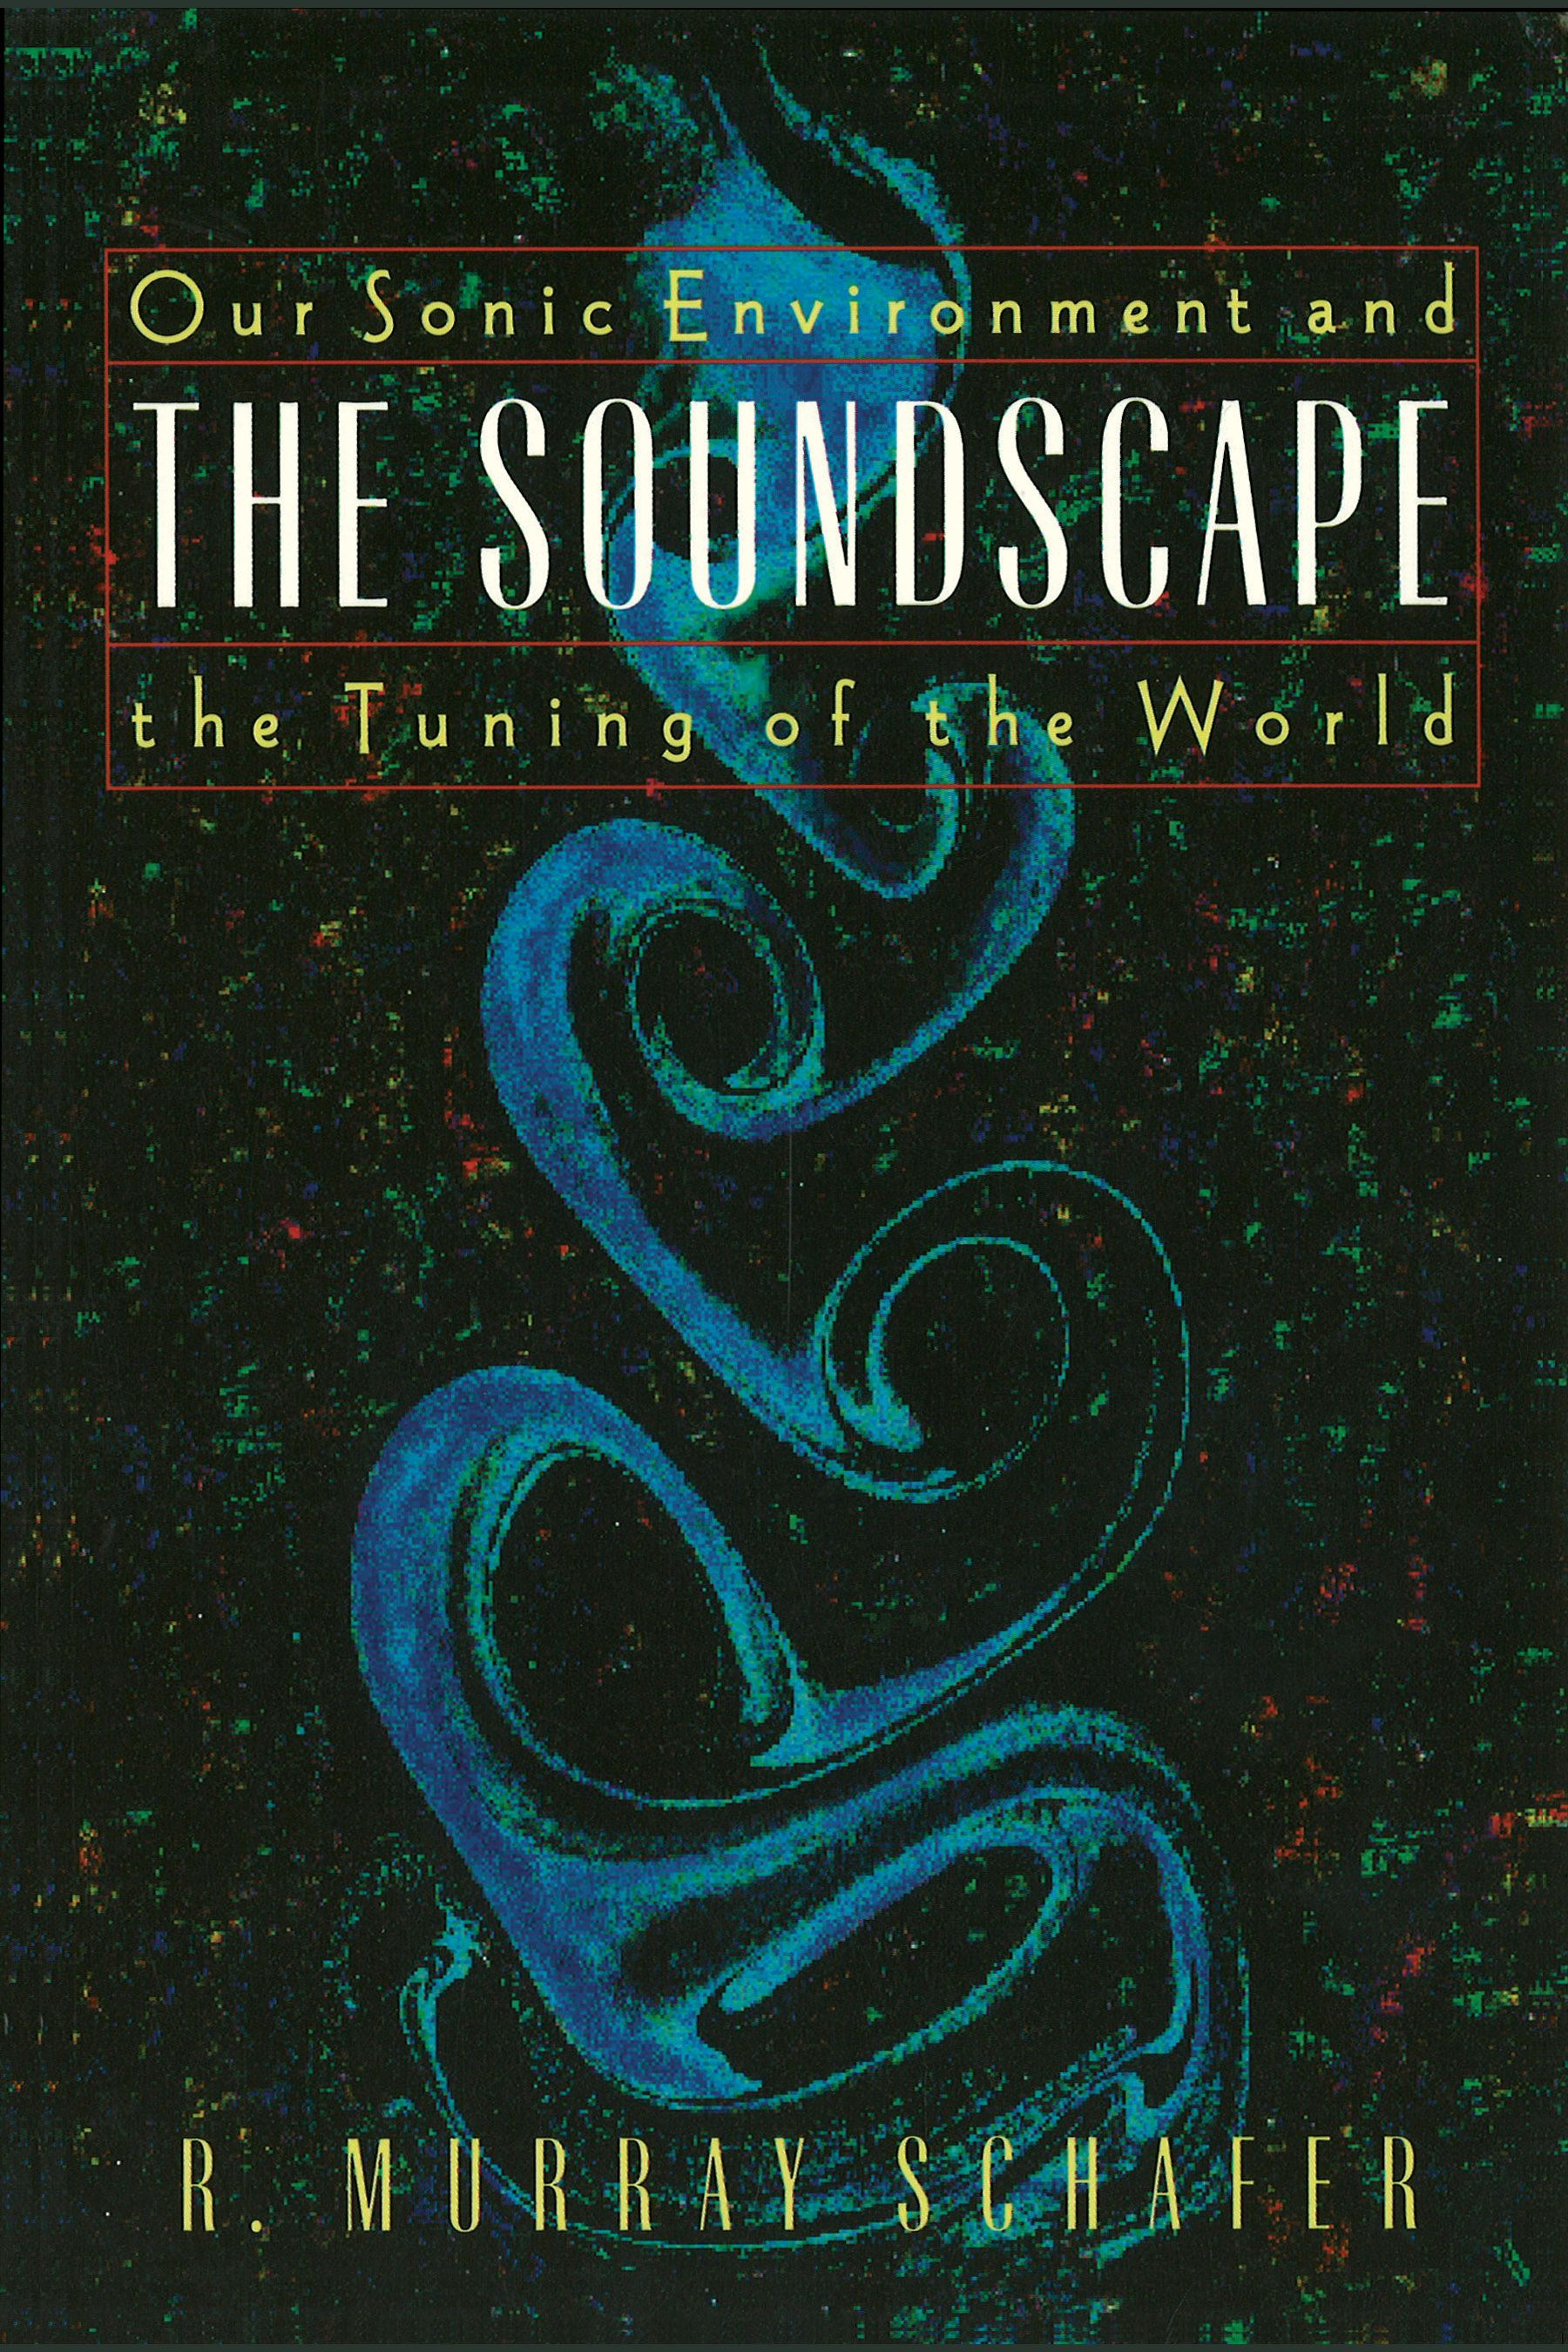 Kindle books direct download The Soundscape: Our